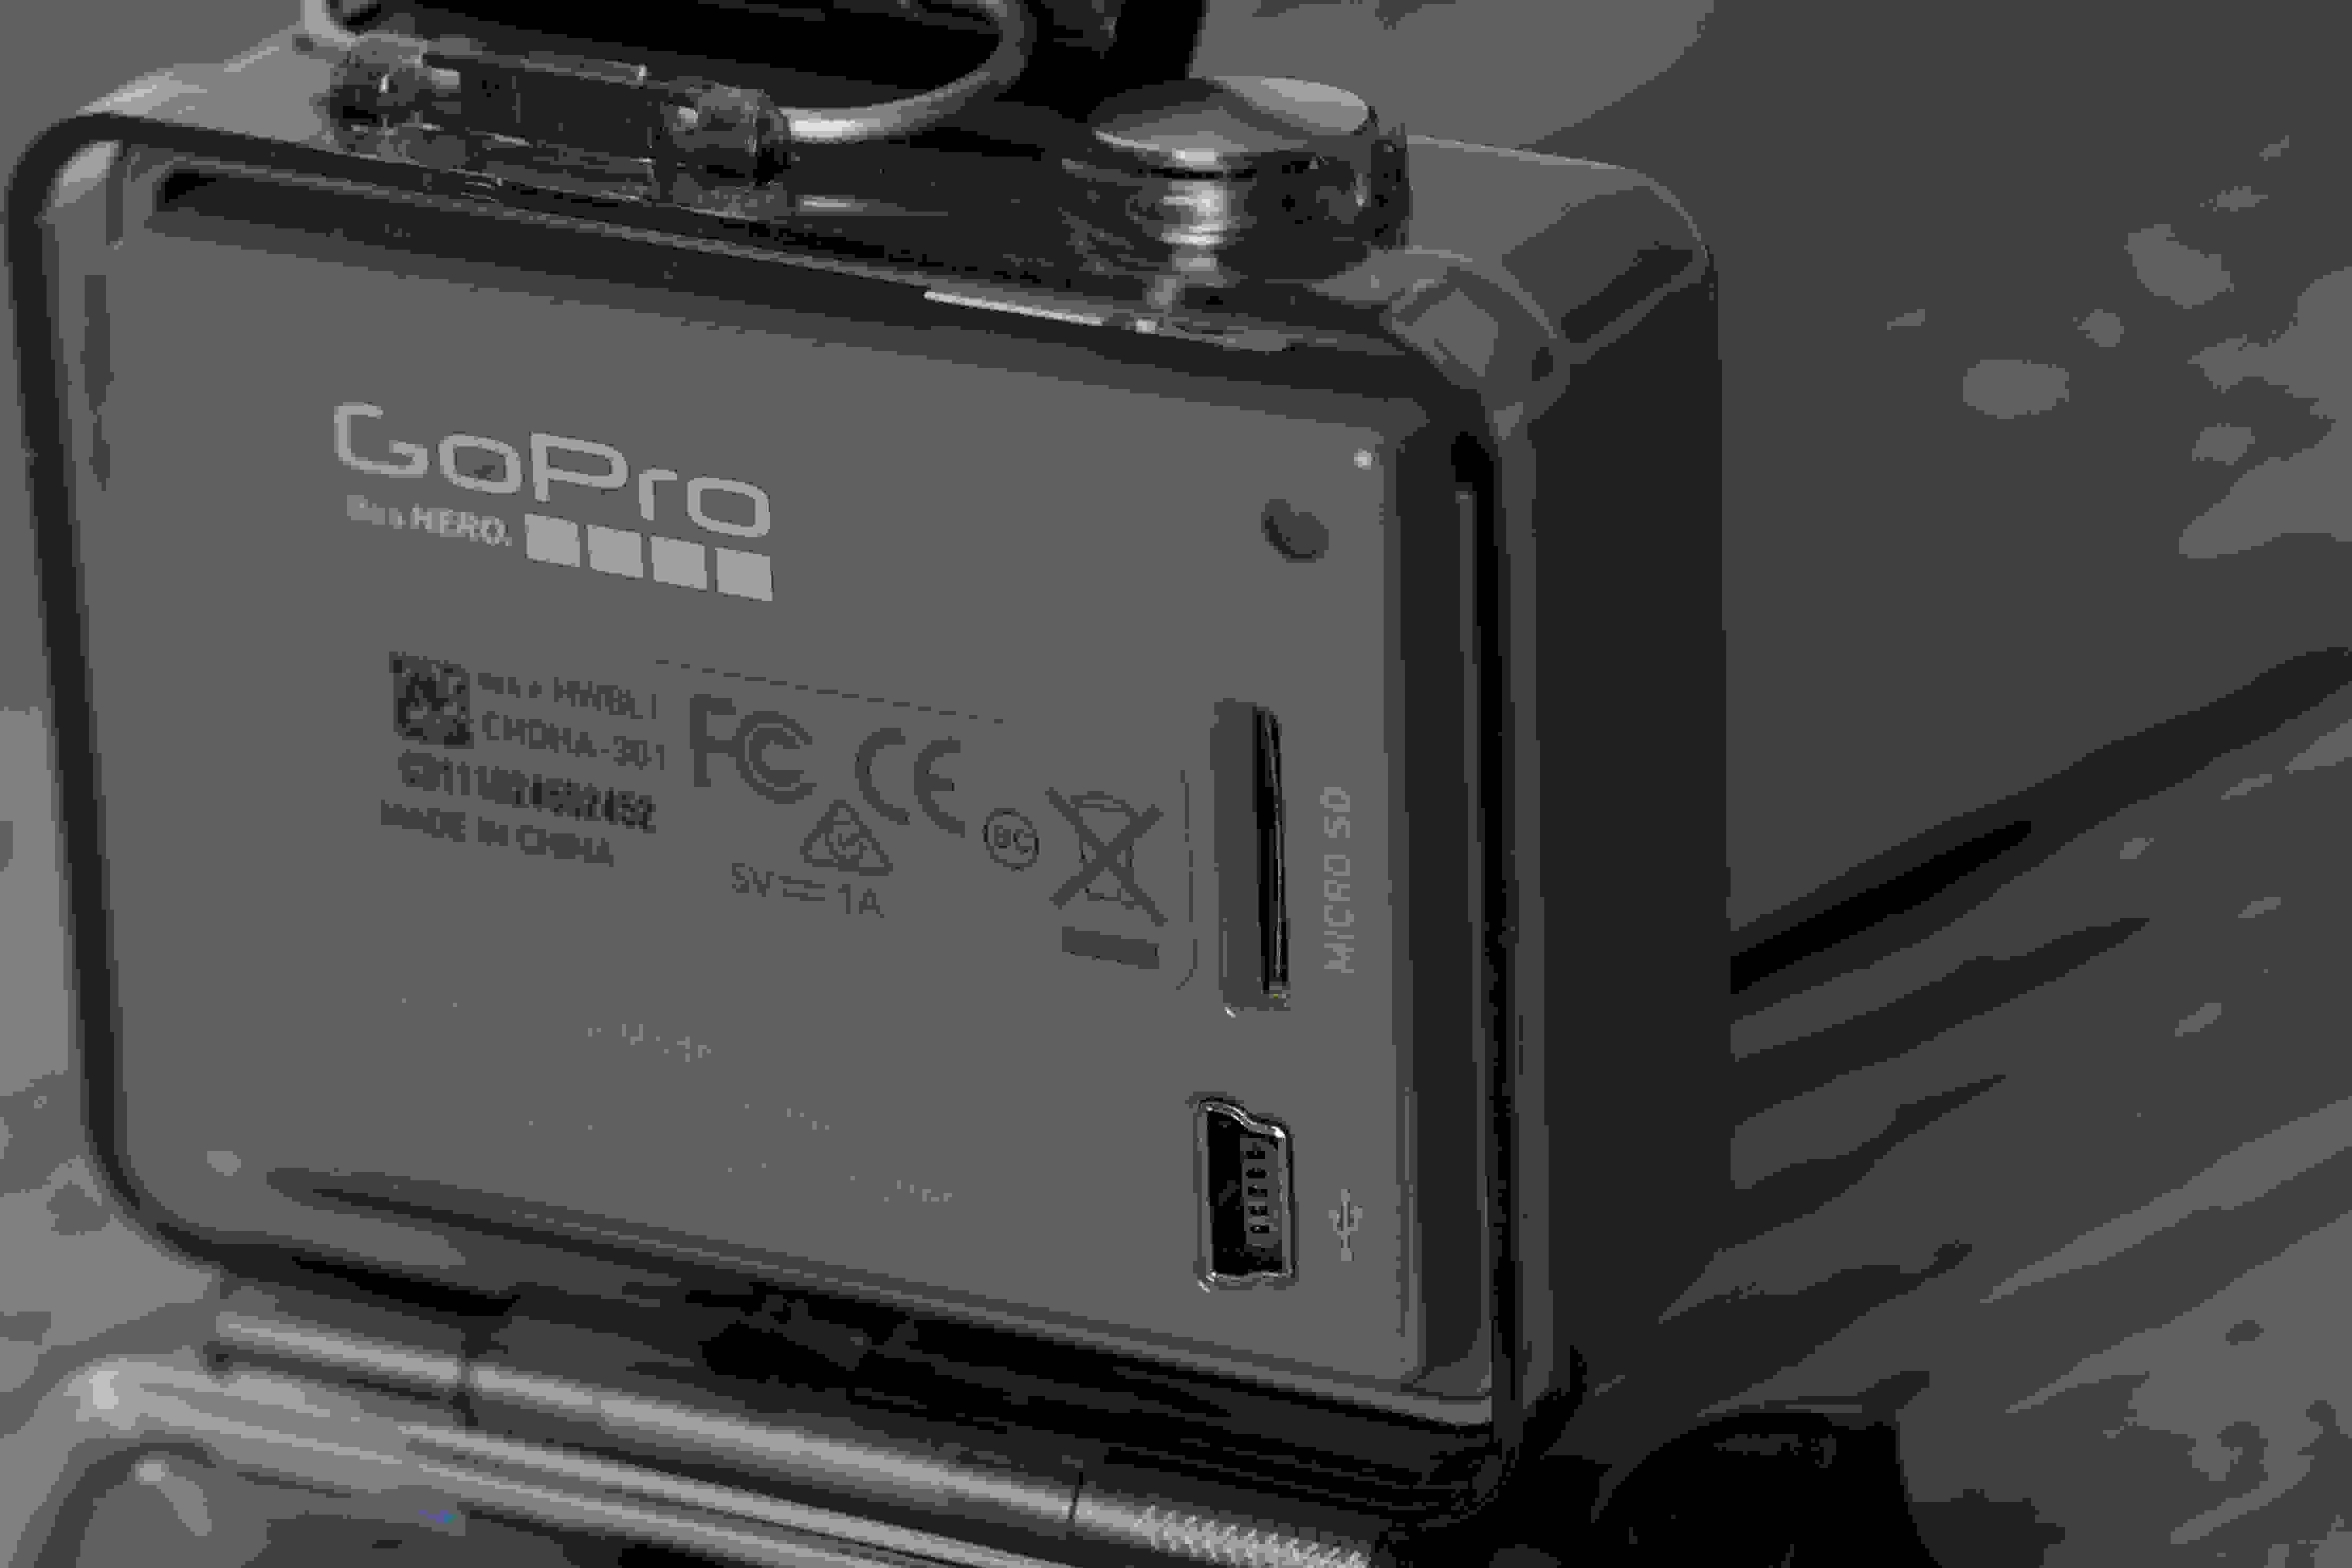 A photograph of the GoPro Hero 2014 edition's miniUSB port and microSD card slot.